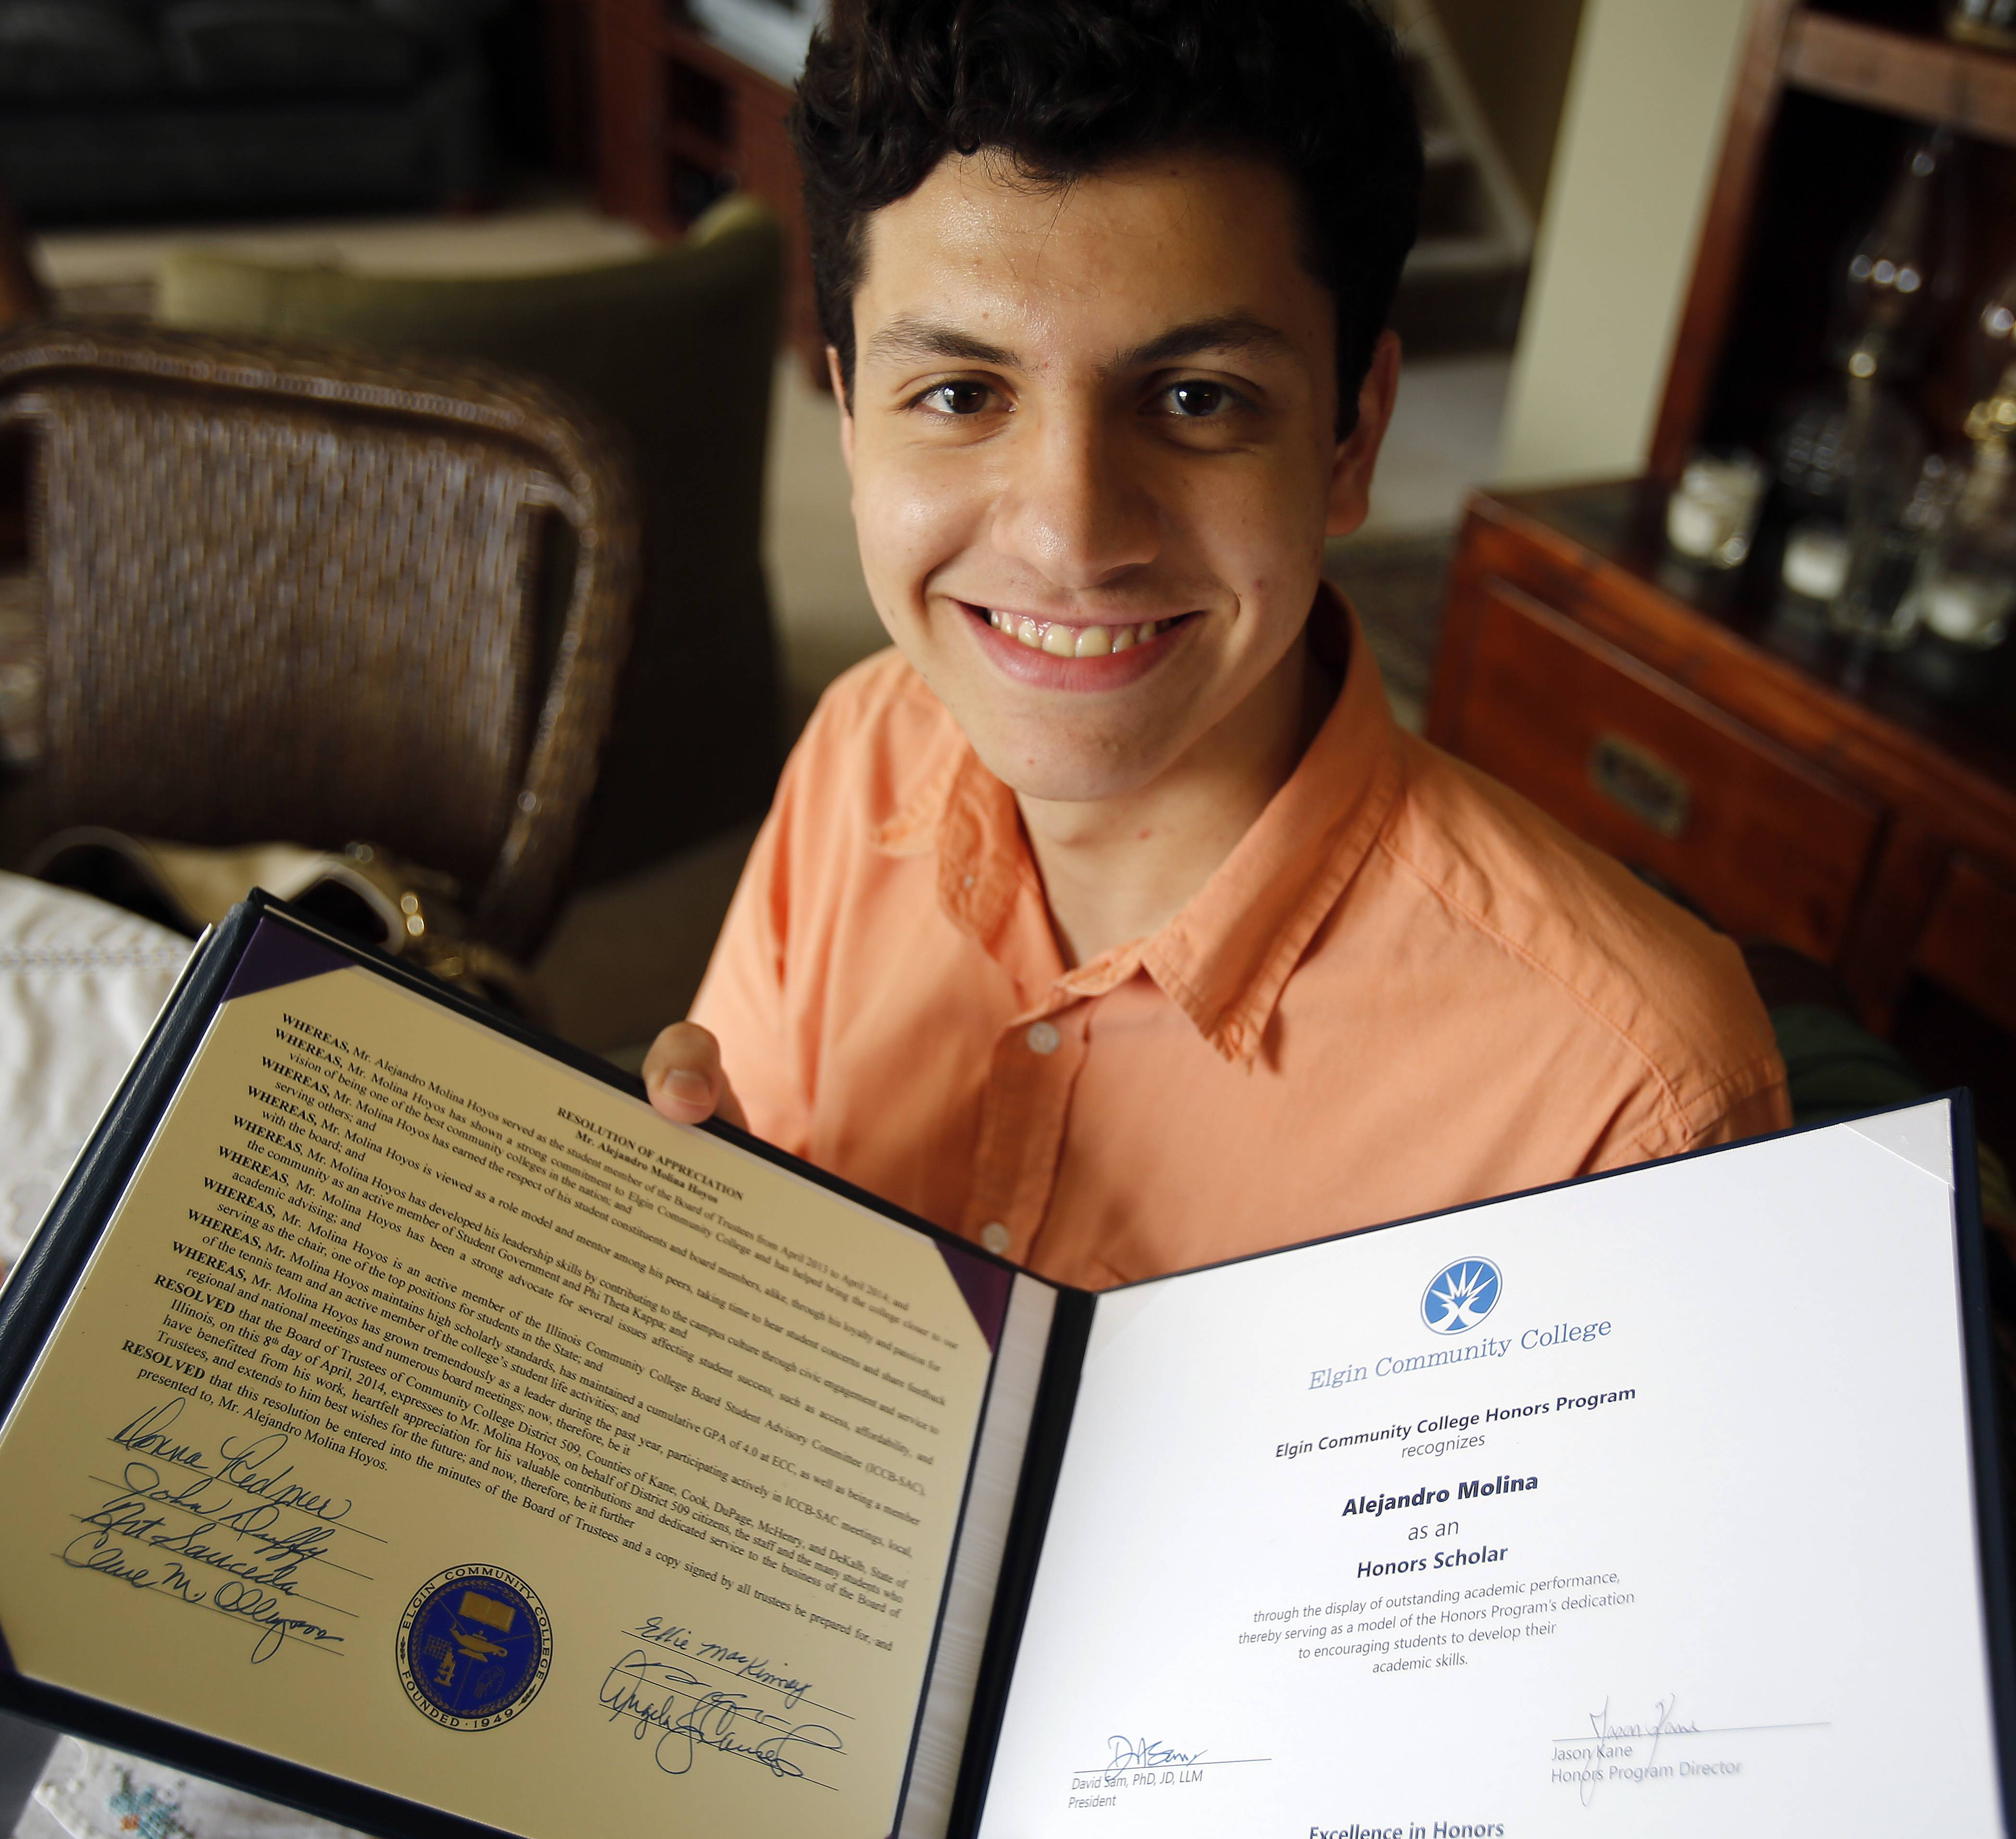 Alejandro Molina Hoyos of Pingree Grove leads the student advisory committee of the Illinois Board of Higher Education  and was an honors student at Elgin Community College.